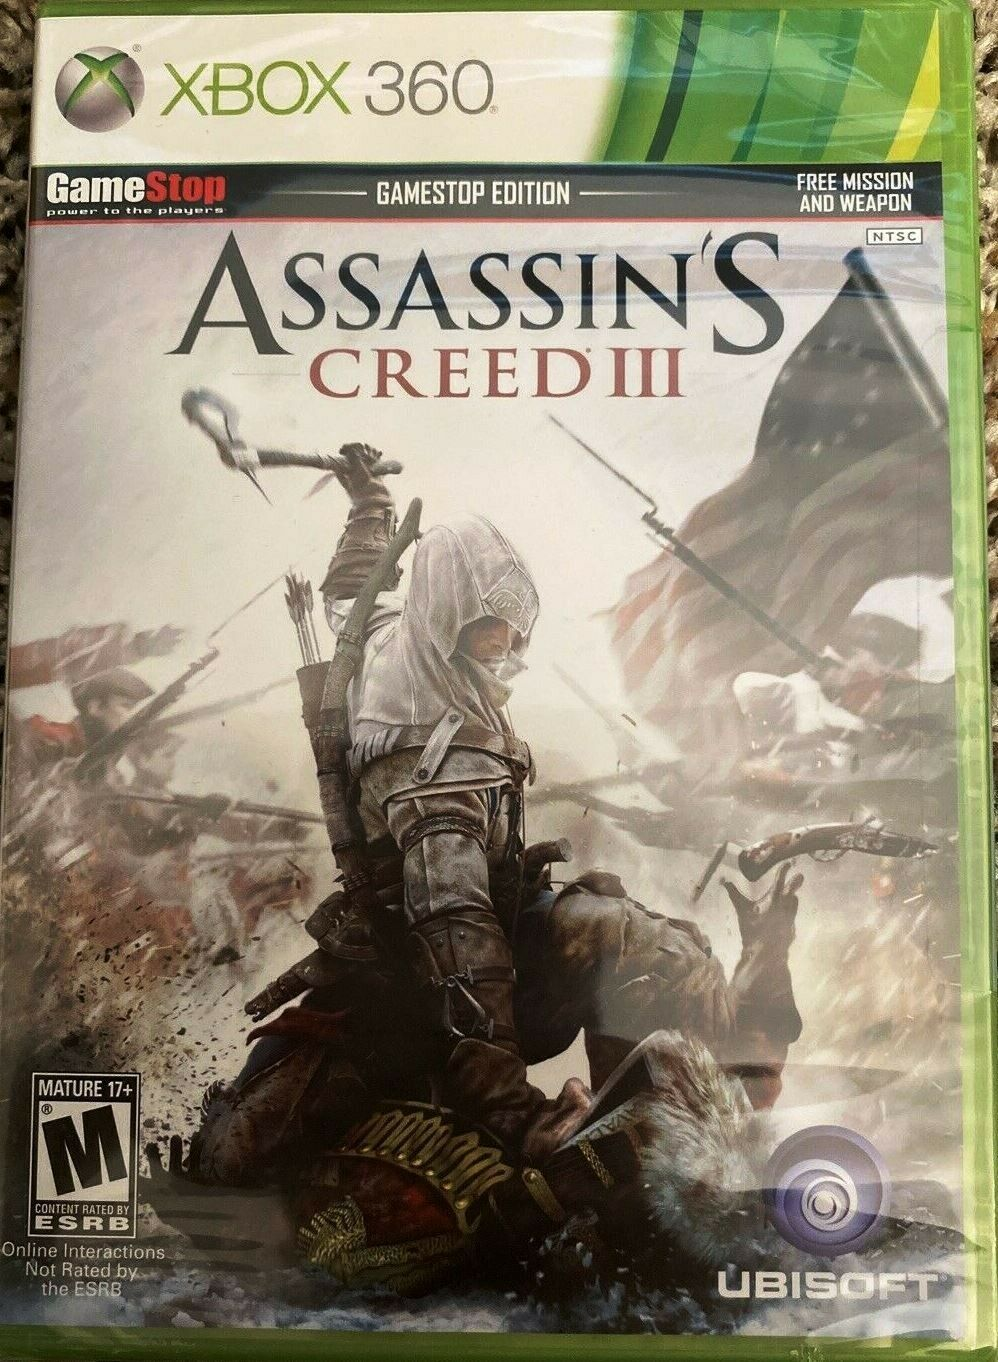 Assassin S Creed Iii 3 Xbox 360 Gamestop Edition For Sale Online Ebay